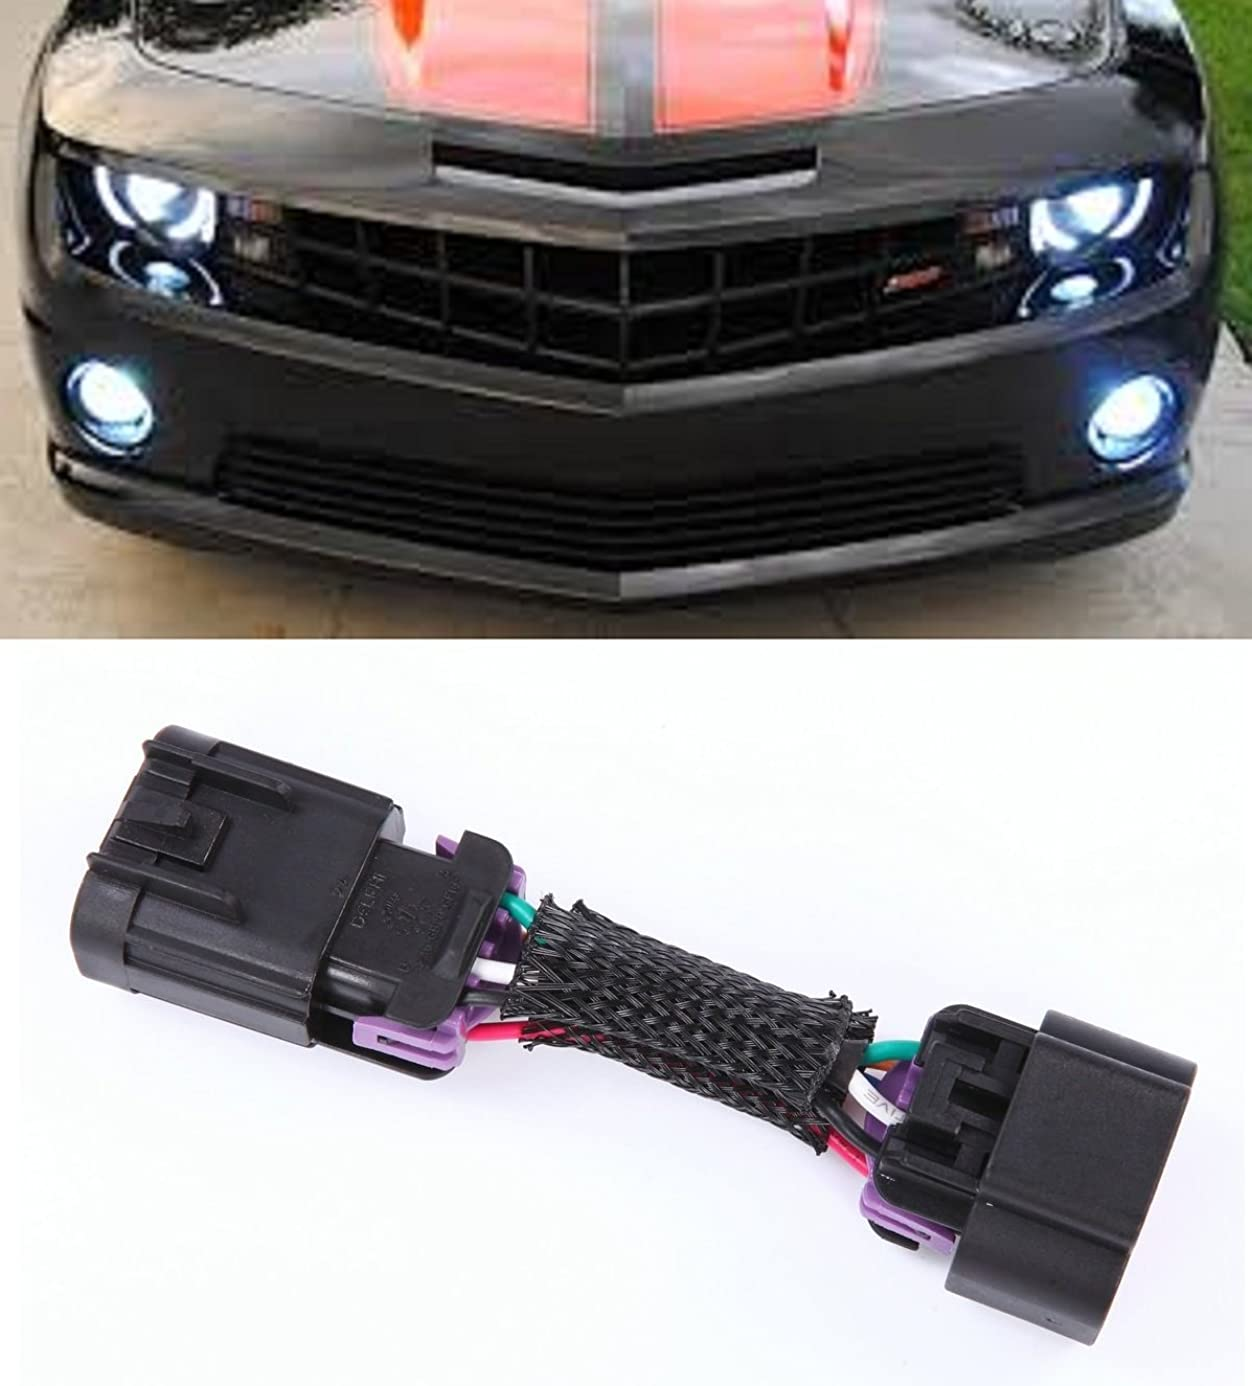 Muzzys 2010-2013 Chevrolet Camaro DRL + Headlights + Halos Harness Plug and Play Adapter Kit,Gain Control of your Daytime Running (Fog) Lights! fjh4206310